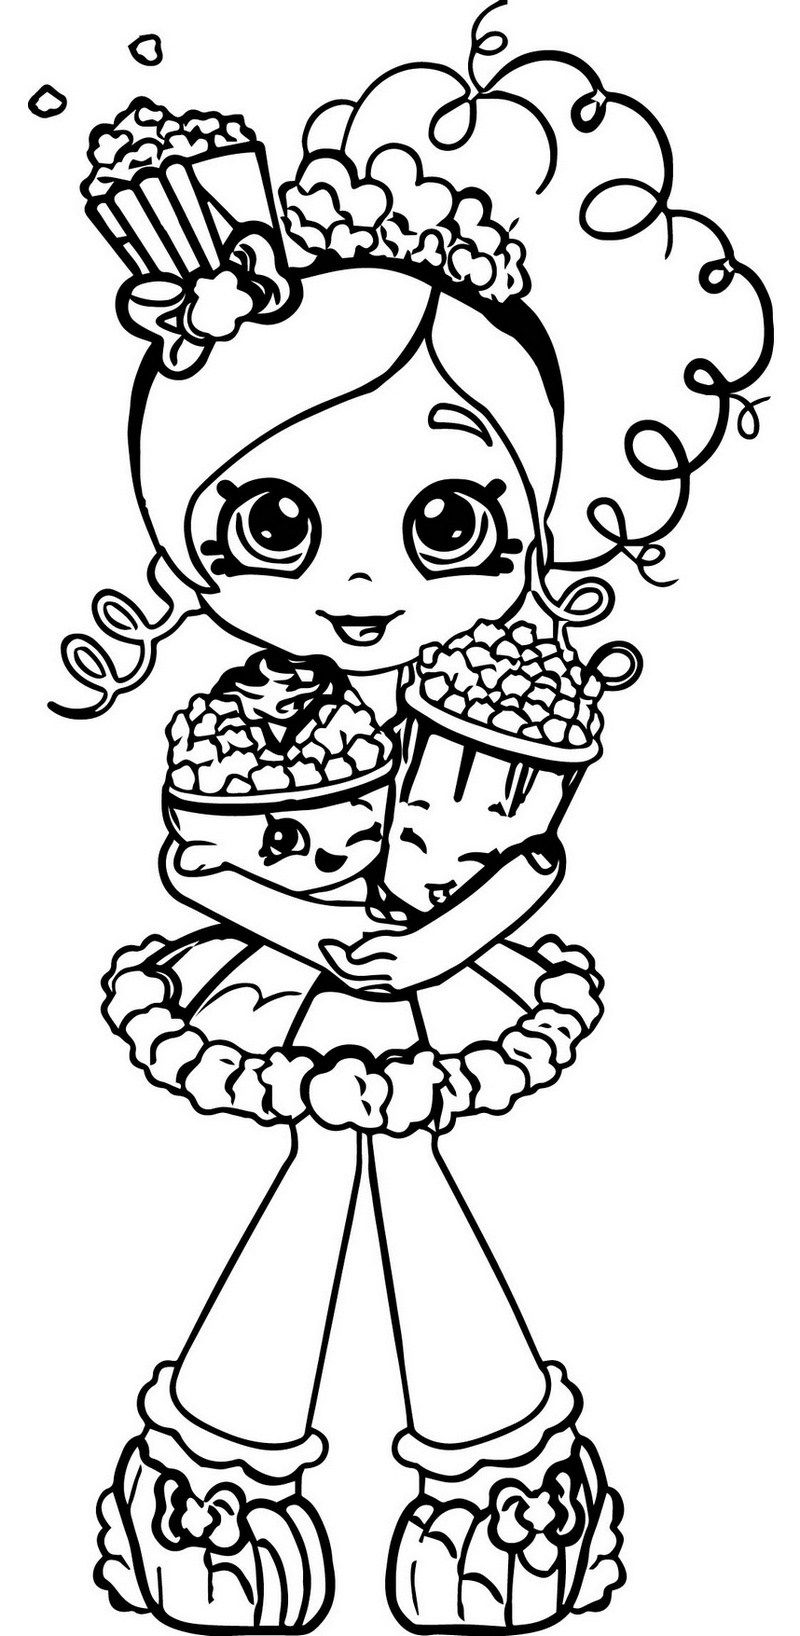 shopkin pictures that you can print shopkins all the family coloring pages printable can pictures shopkin you that print